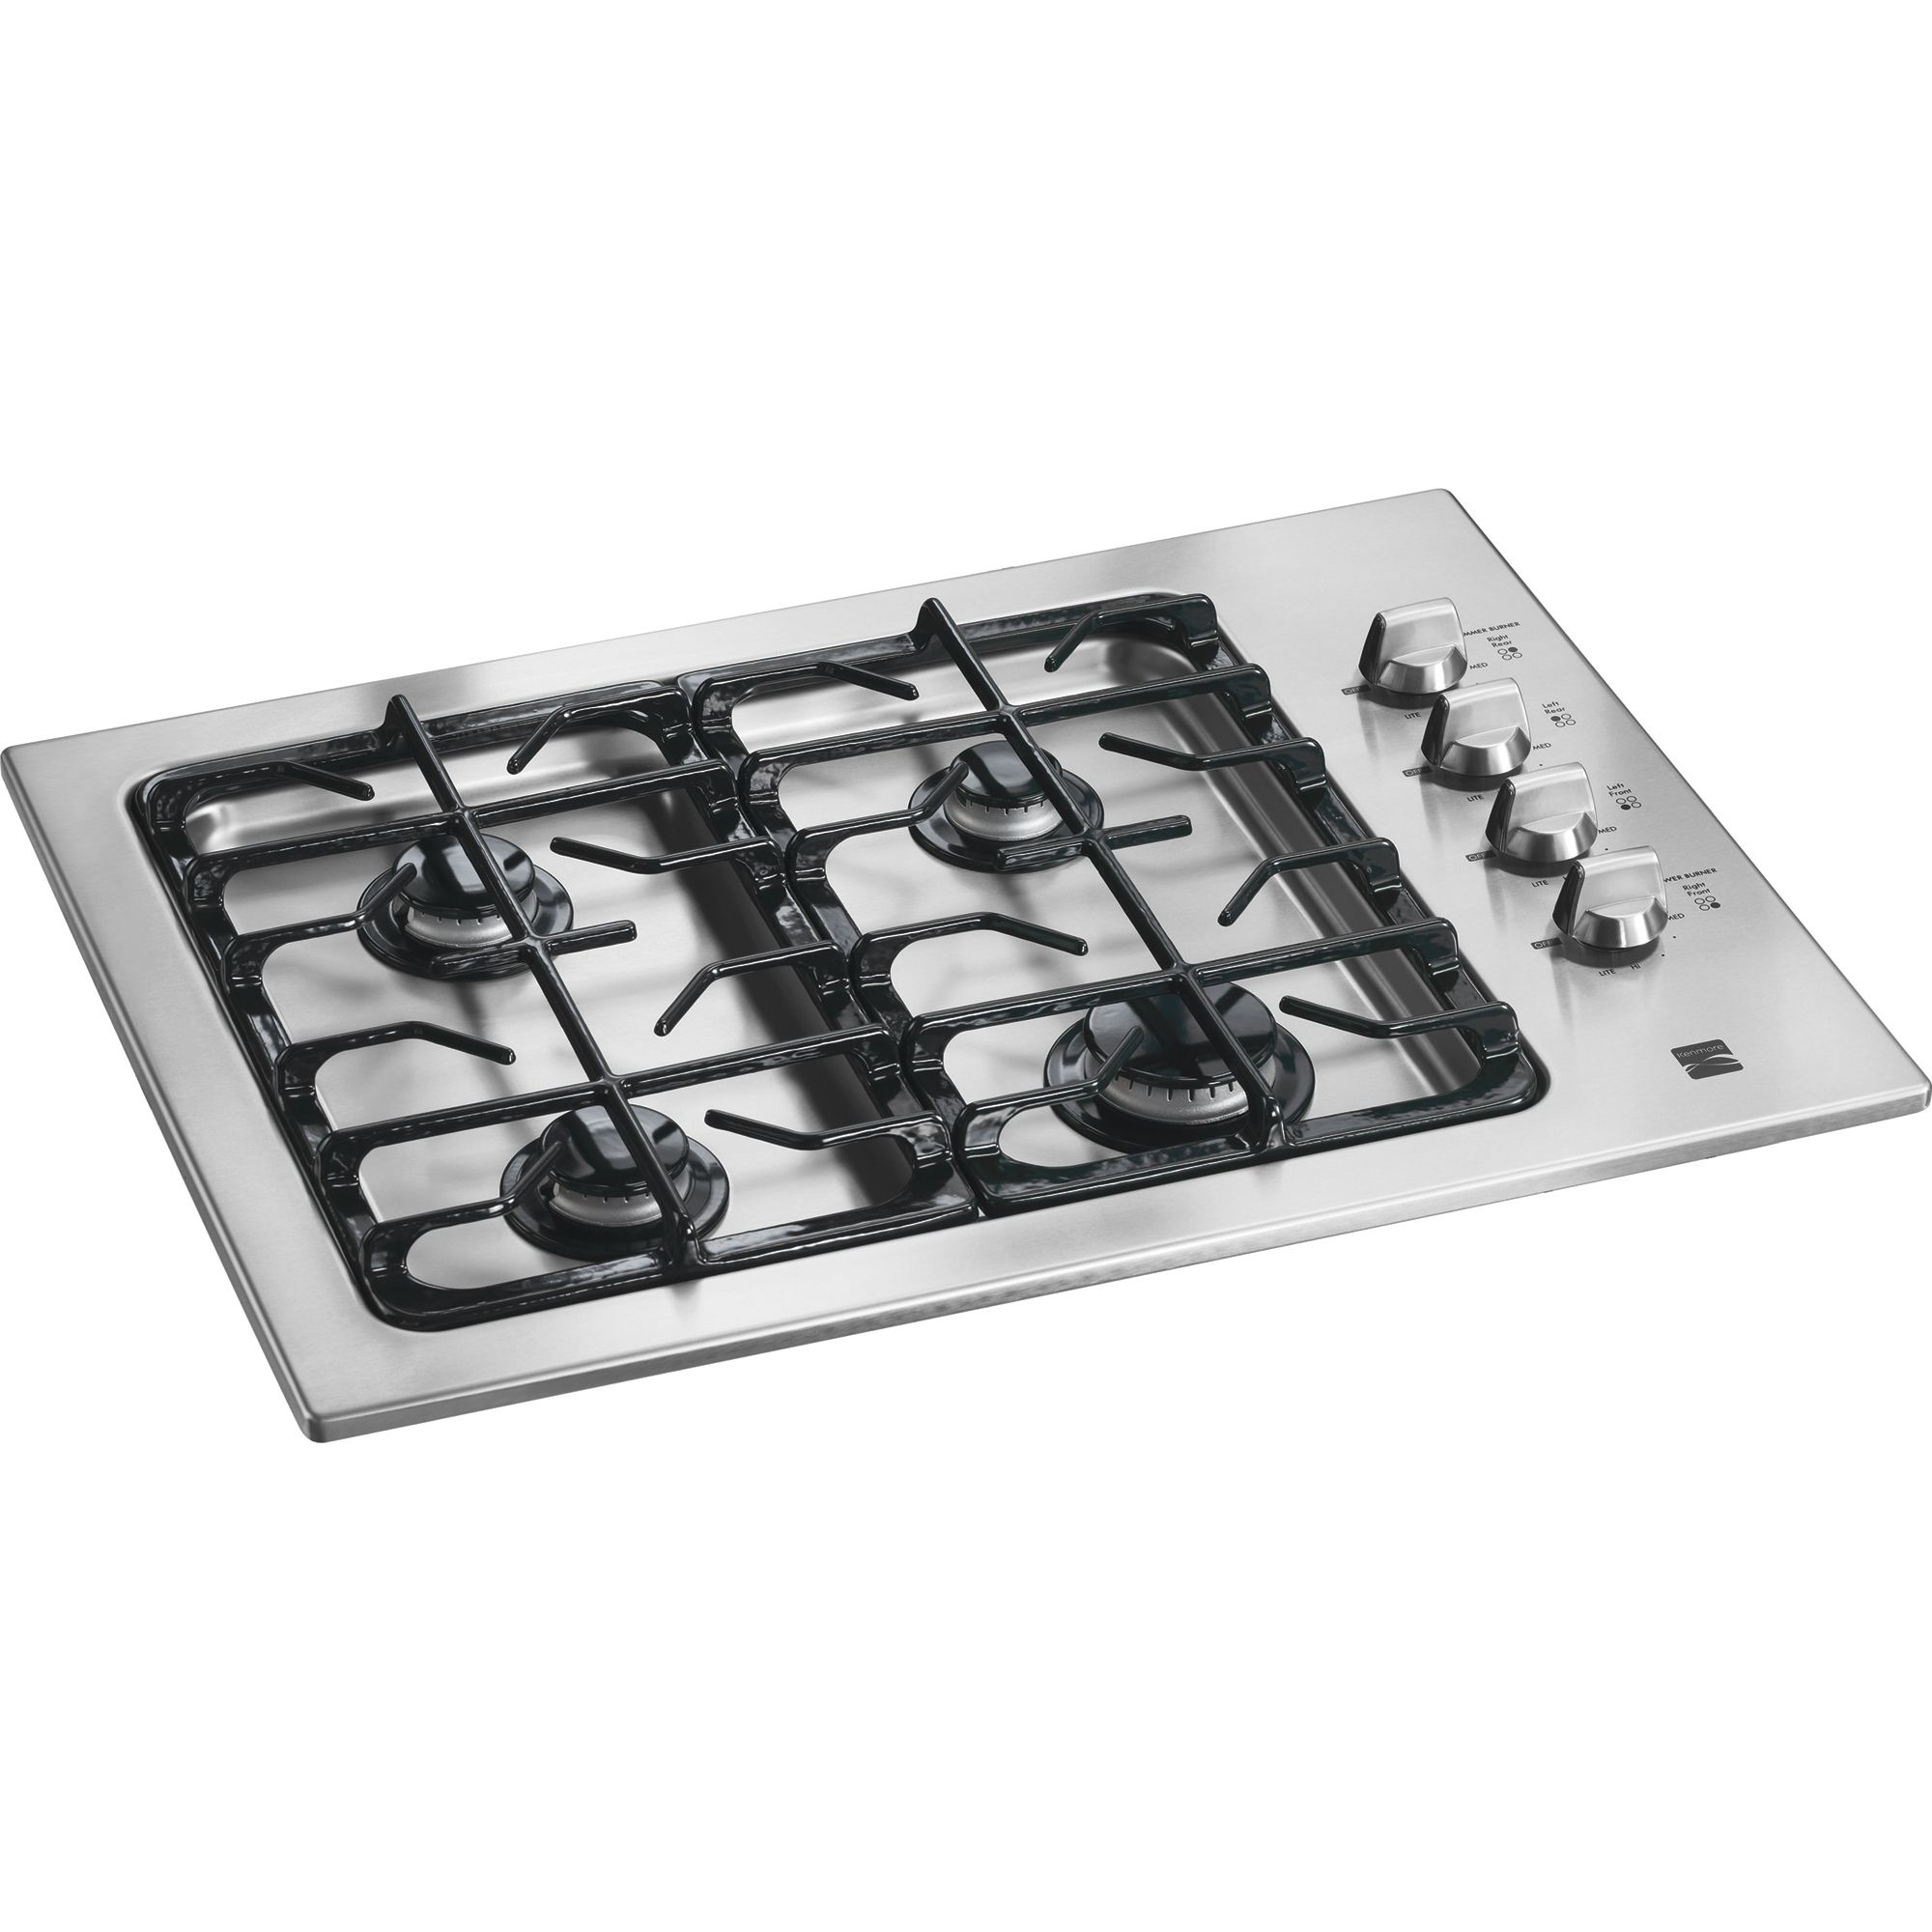 "Kenmore 30"" Sealed Gas Cooktop 3242"